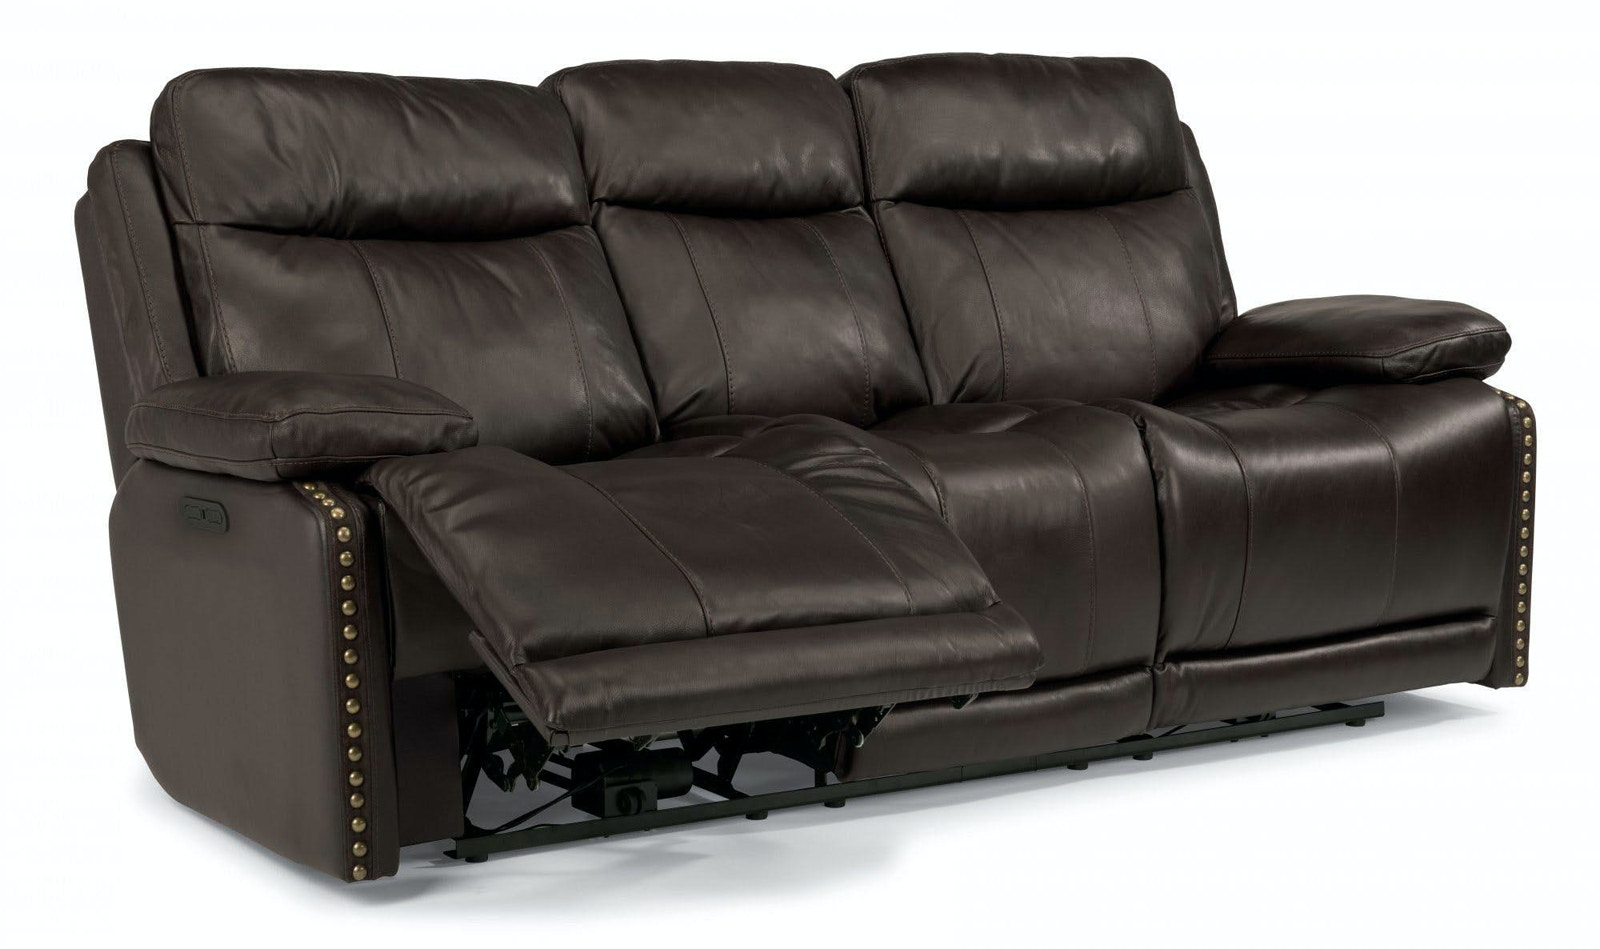 Flexsteel Russell Reclining Leather Sofa 051226